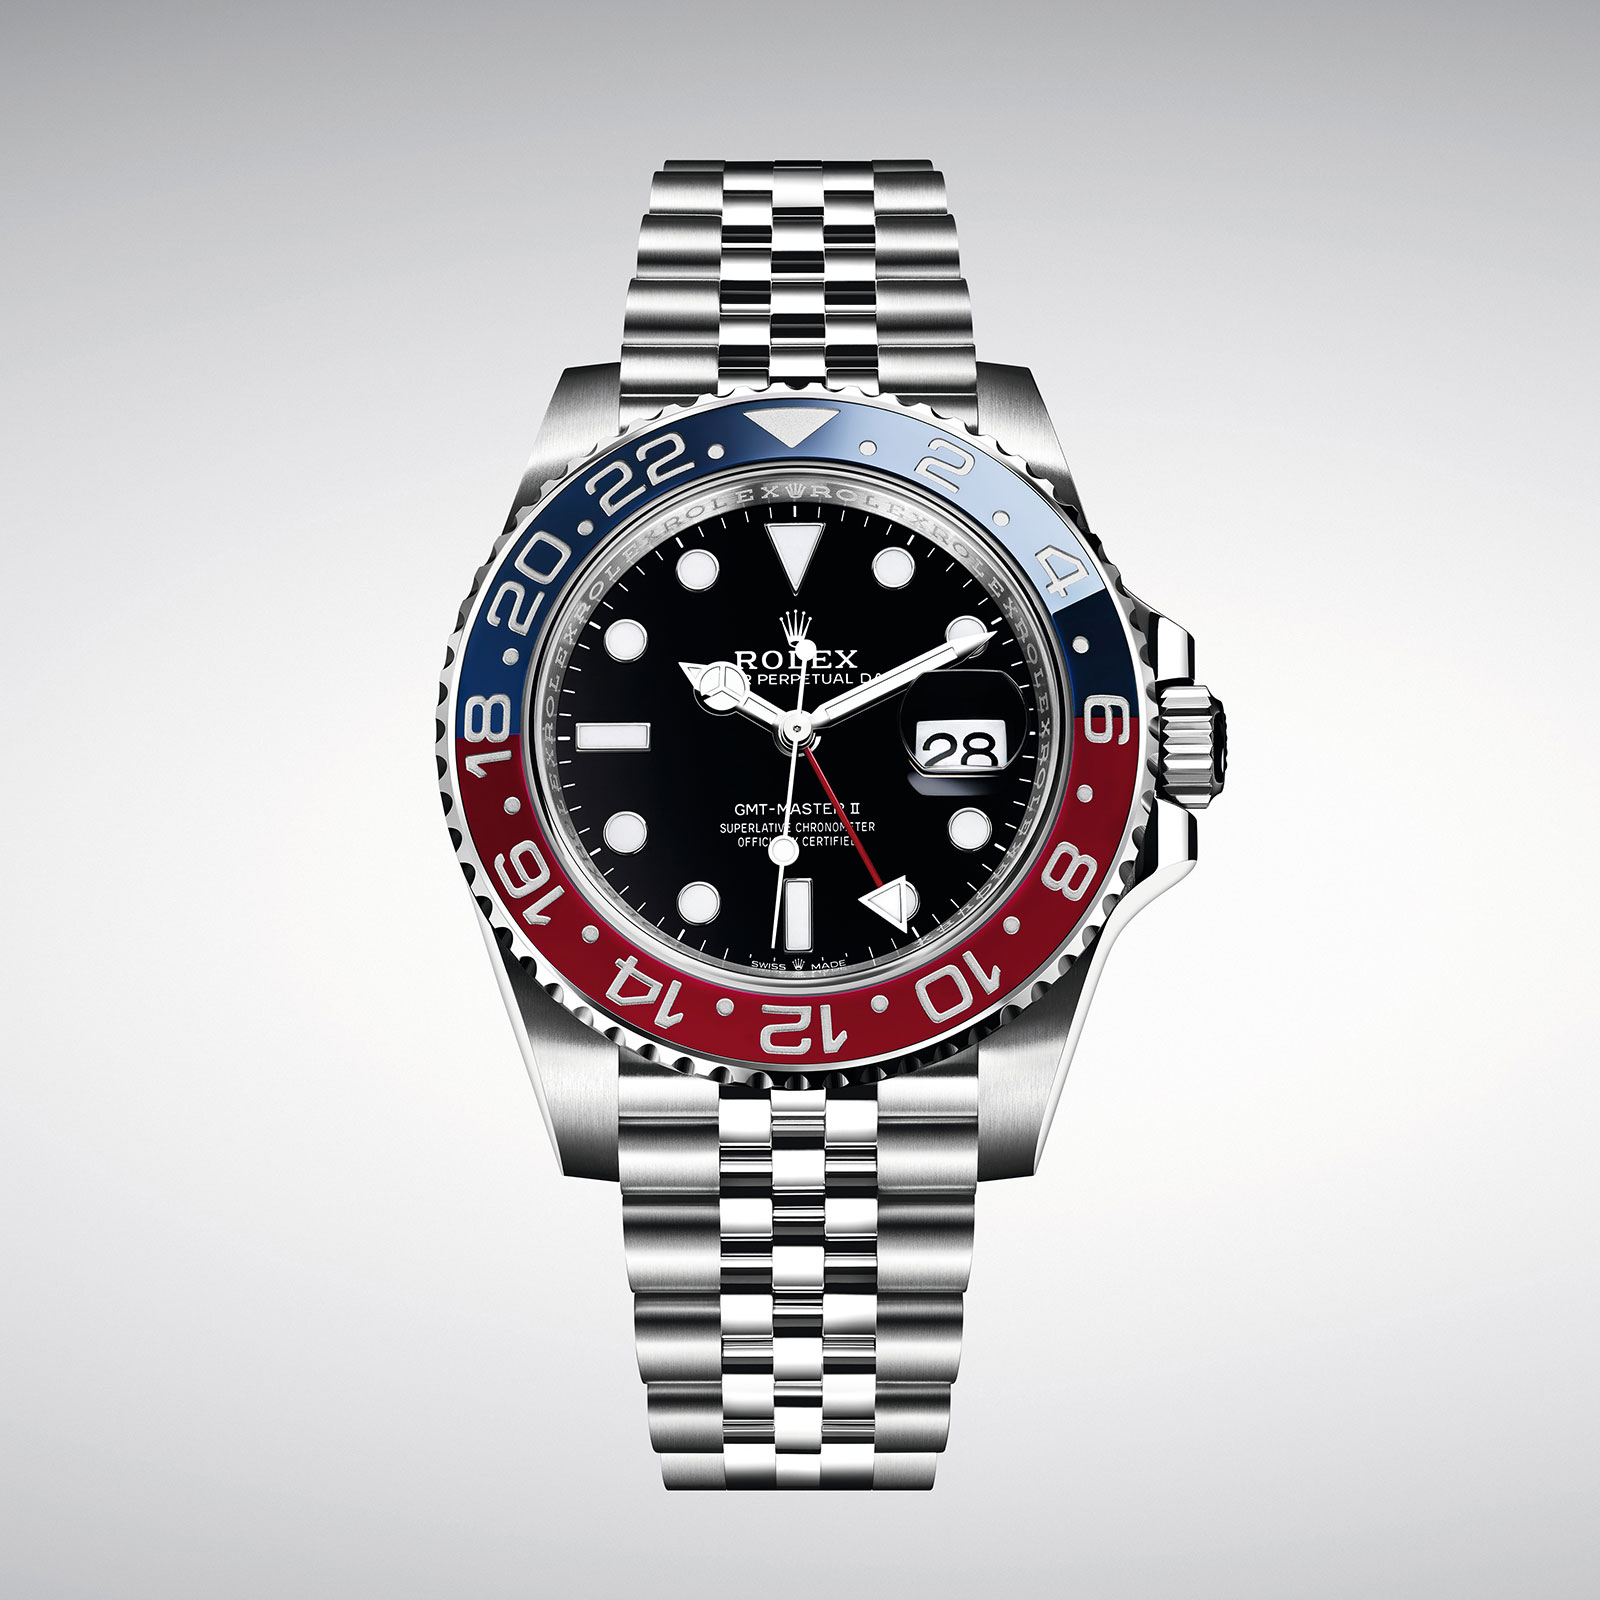 Baselworld 2018 Rolex Introduces the GMT,Master II \u201cPepsi